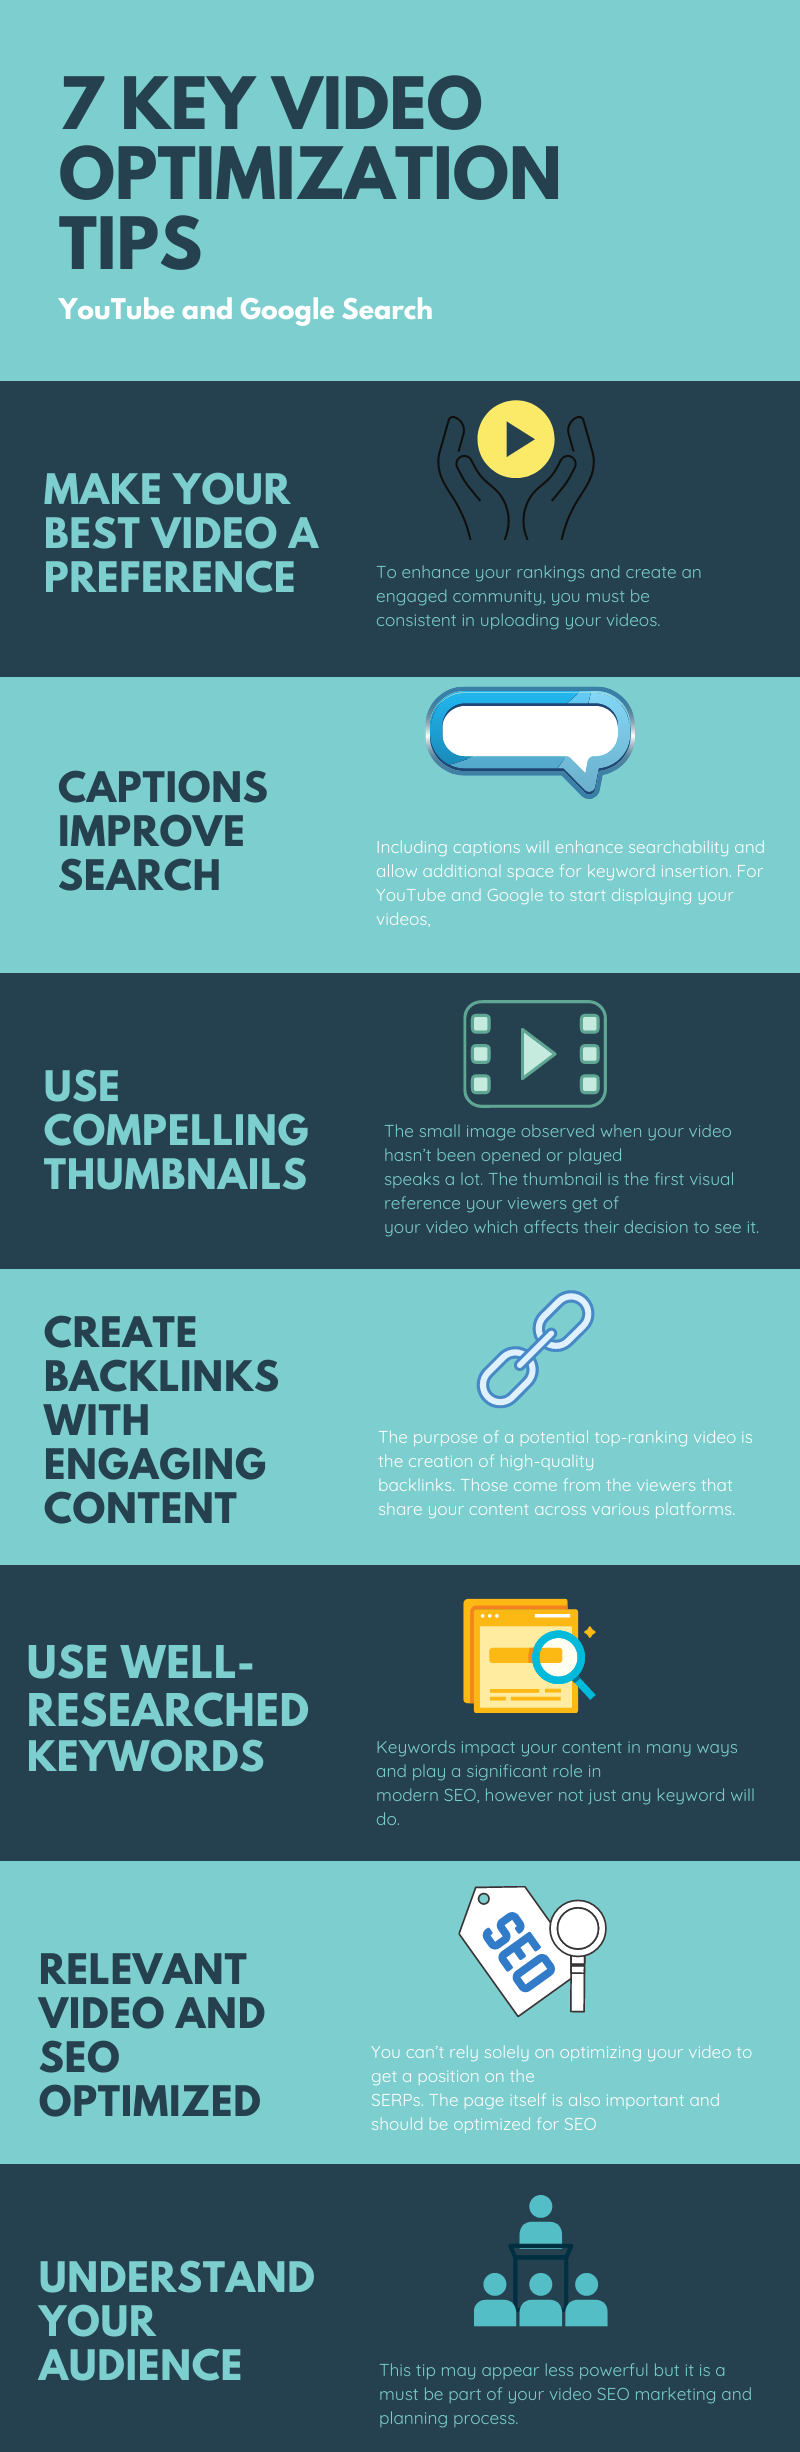 video optimization tips infographic